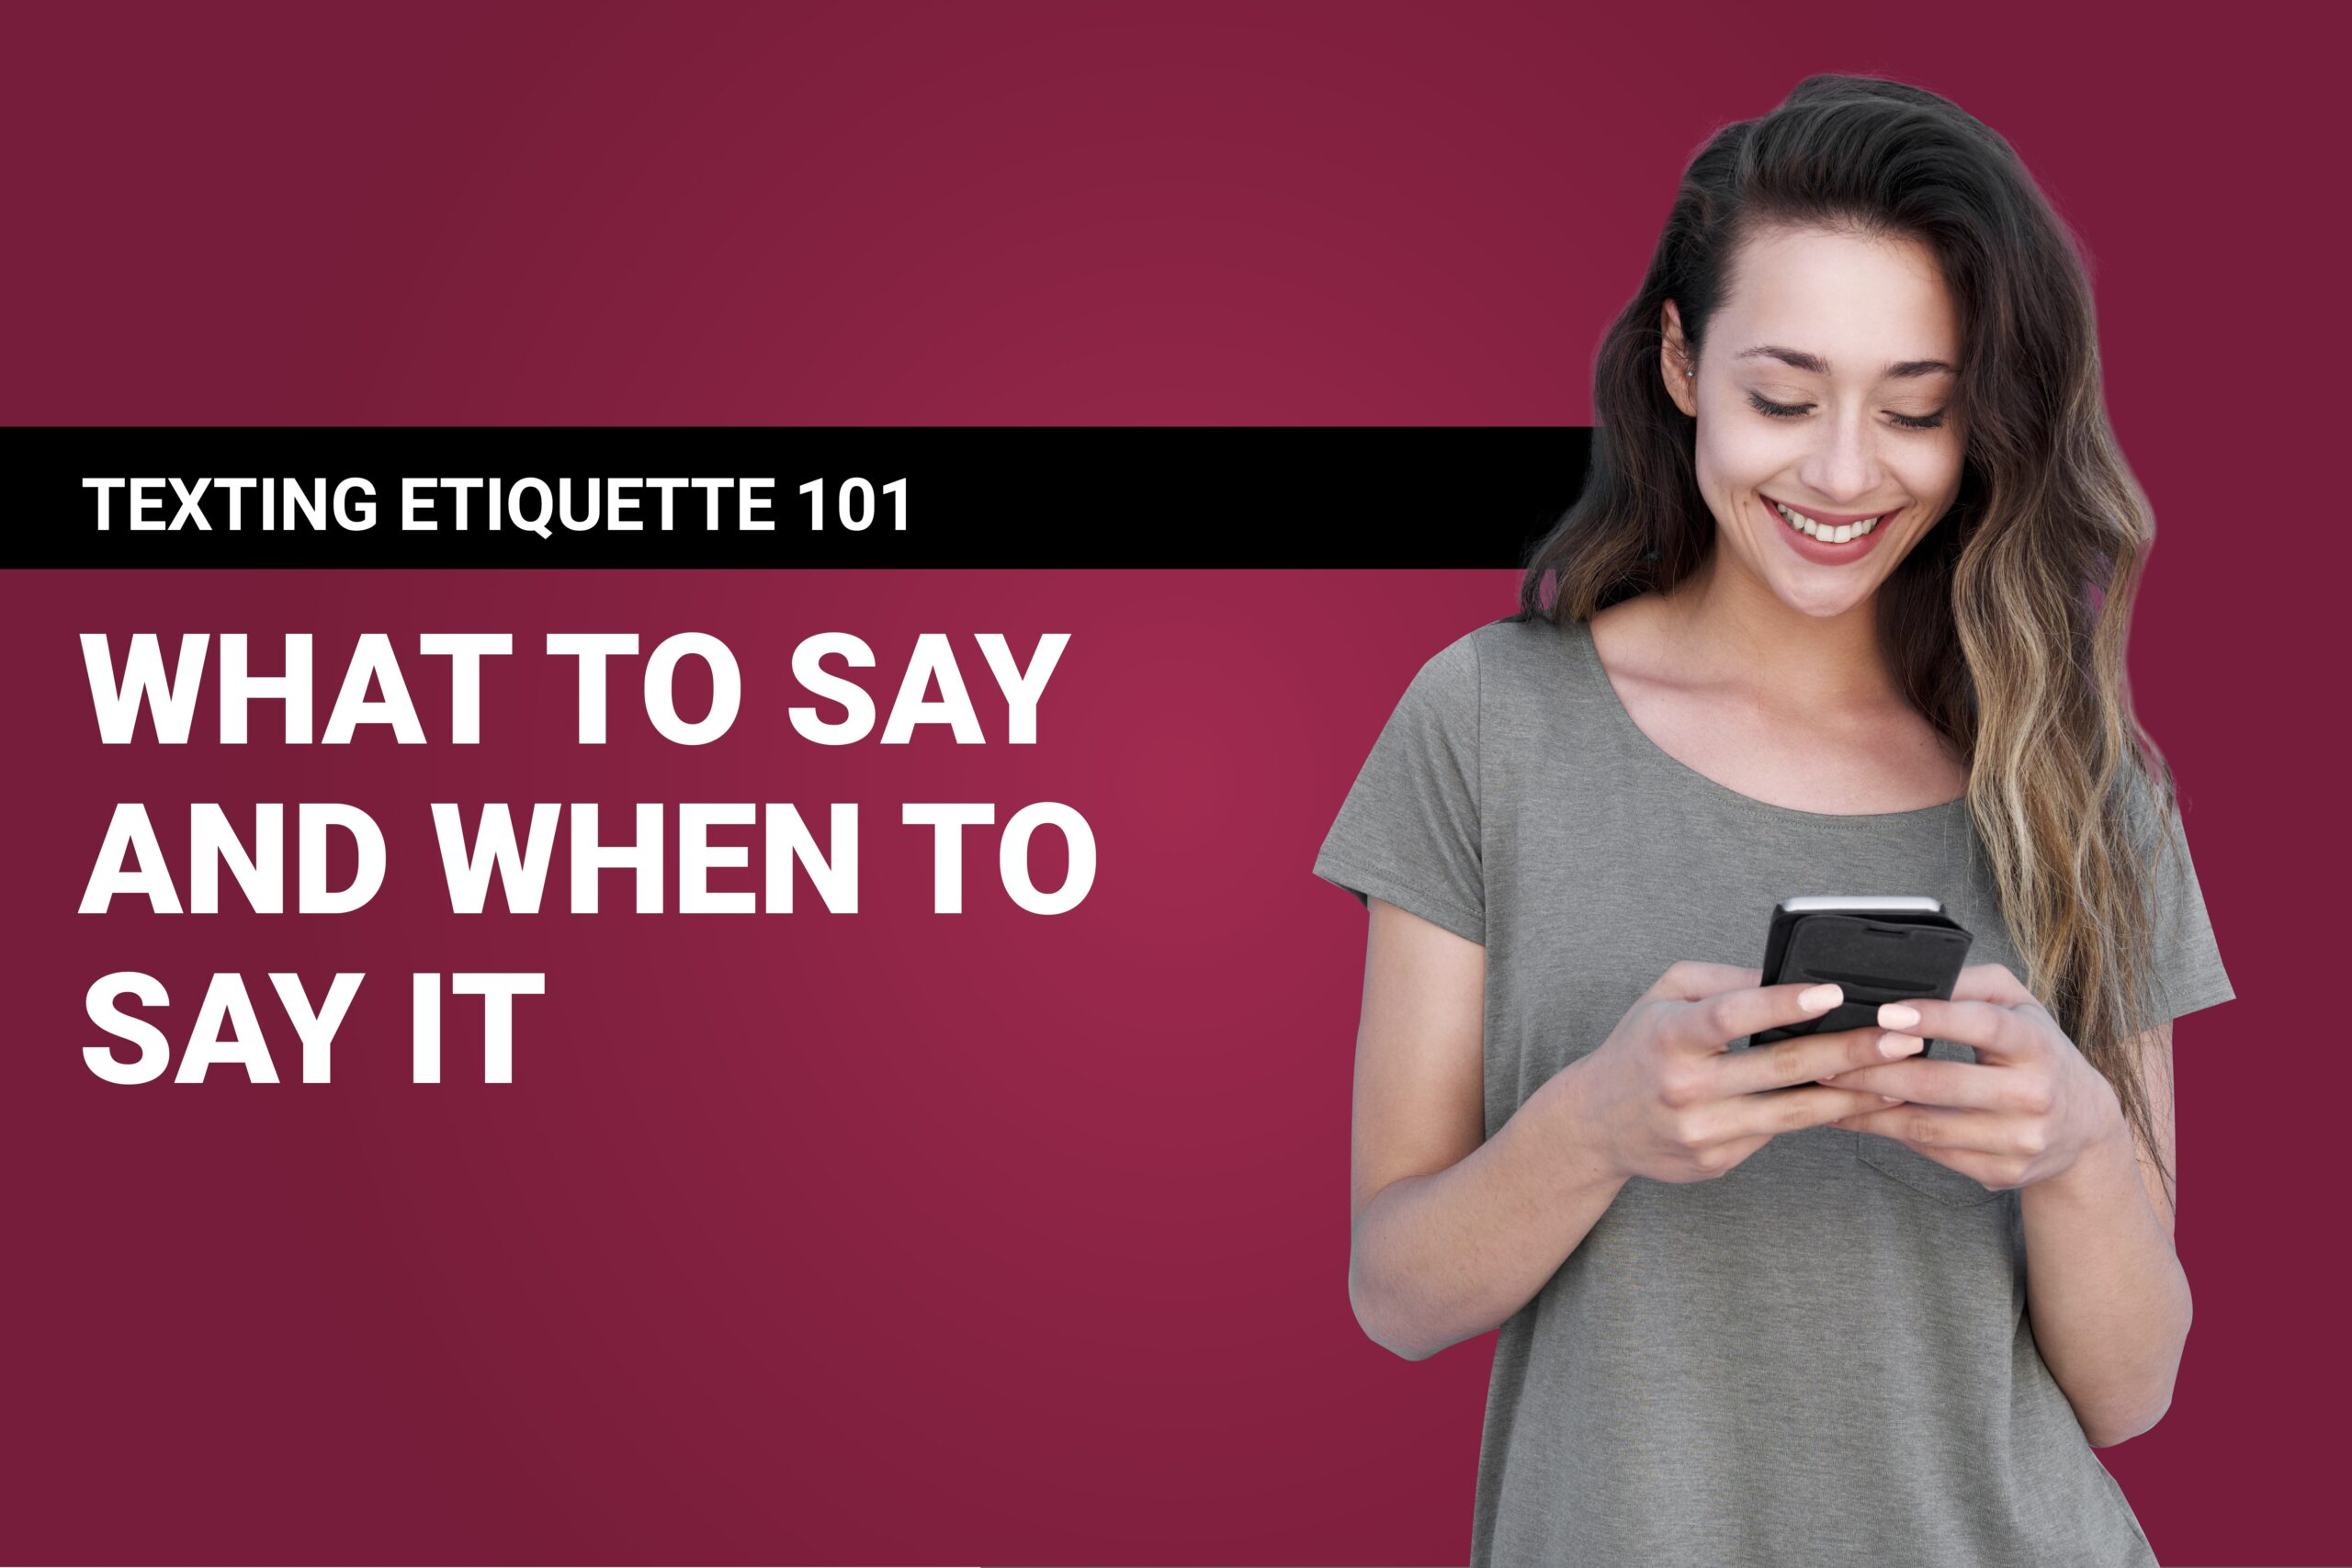 Texting Etiquette 101 – What To Say And When To Say It